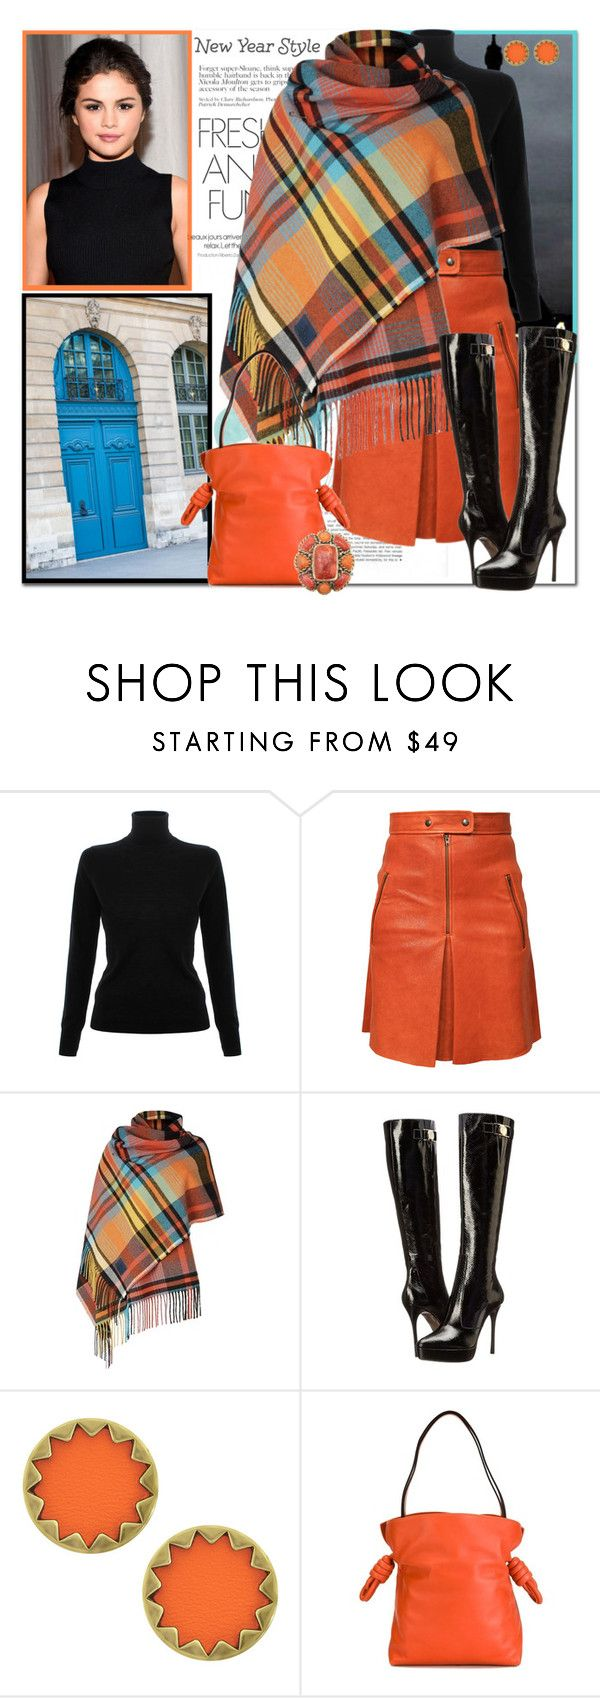 """New Year New Style_Leather Skirt and Poncho"" by msmith801 ❤ liked on Polyvore featuring Victoria, Victoria Beckham, Isabel Marant, OUTRAGE, Versace, House of Harlow 1960, Loewe, Color and colors"